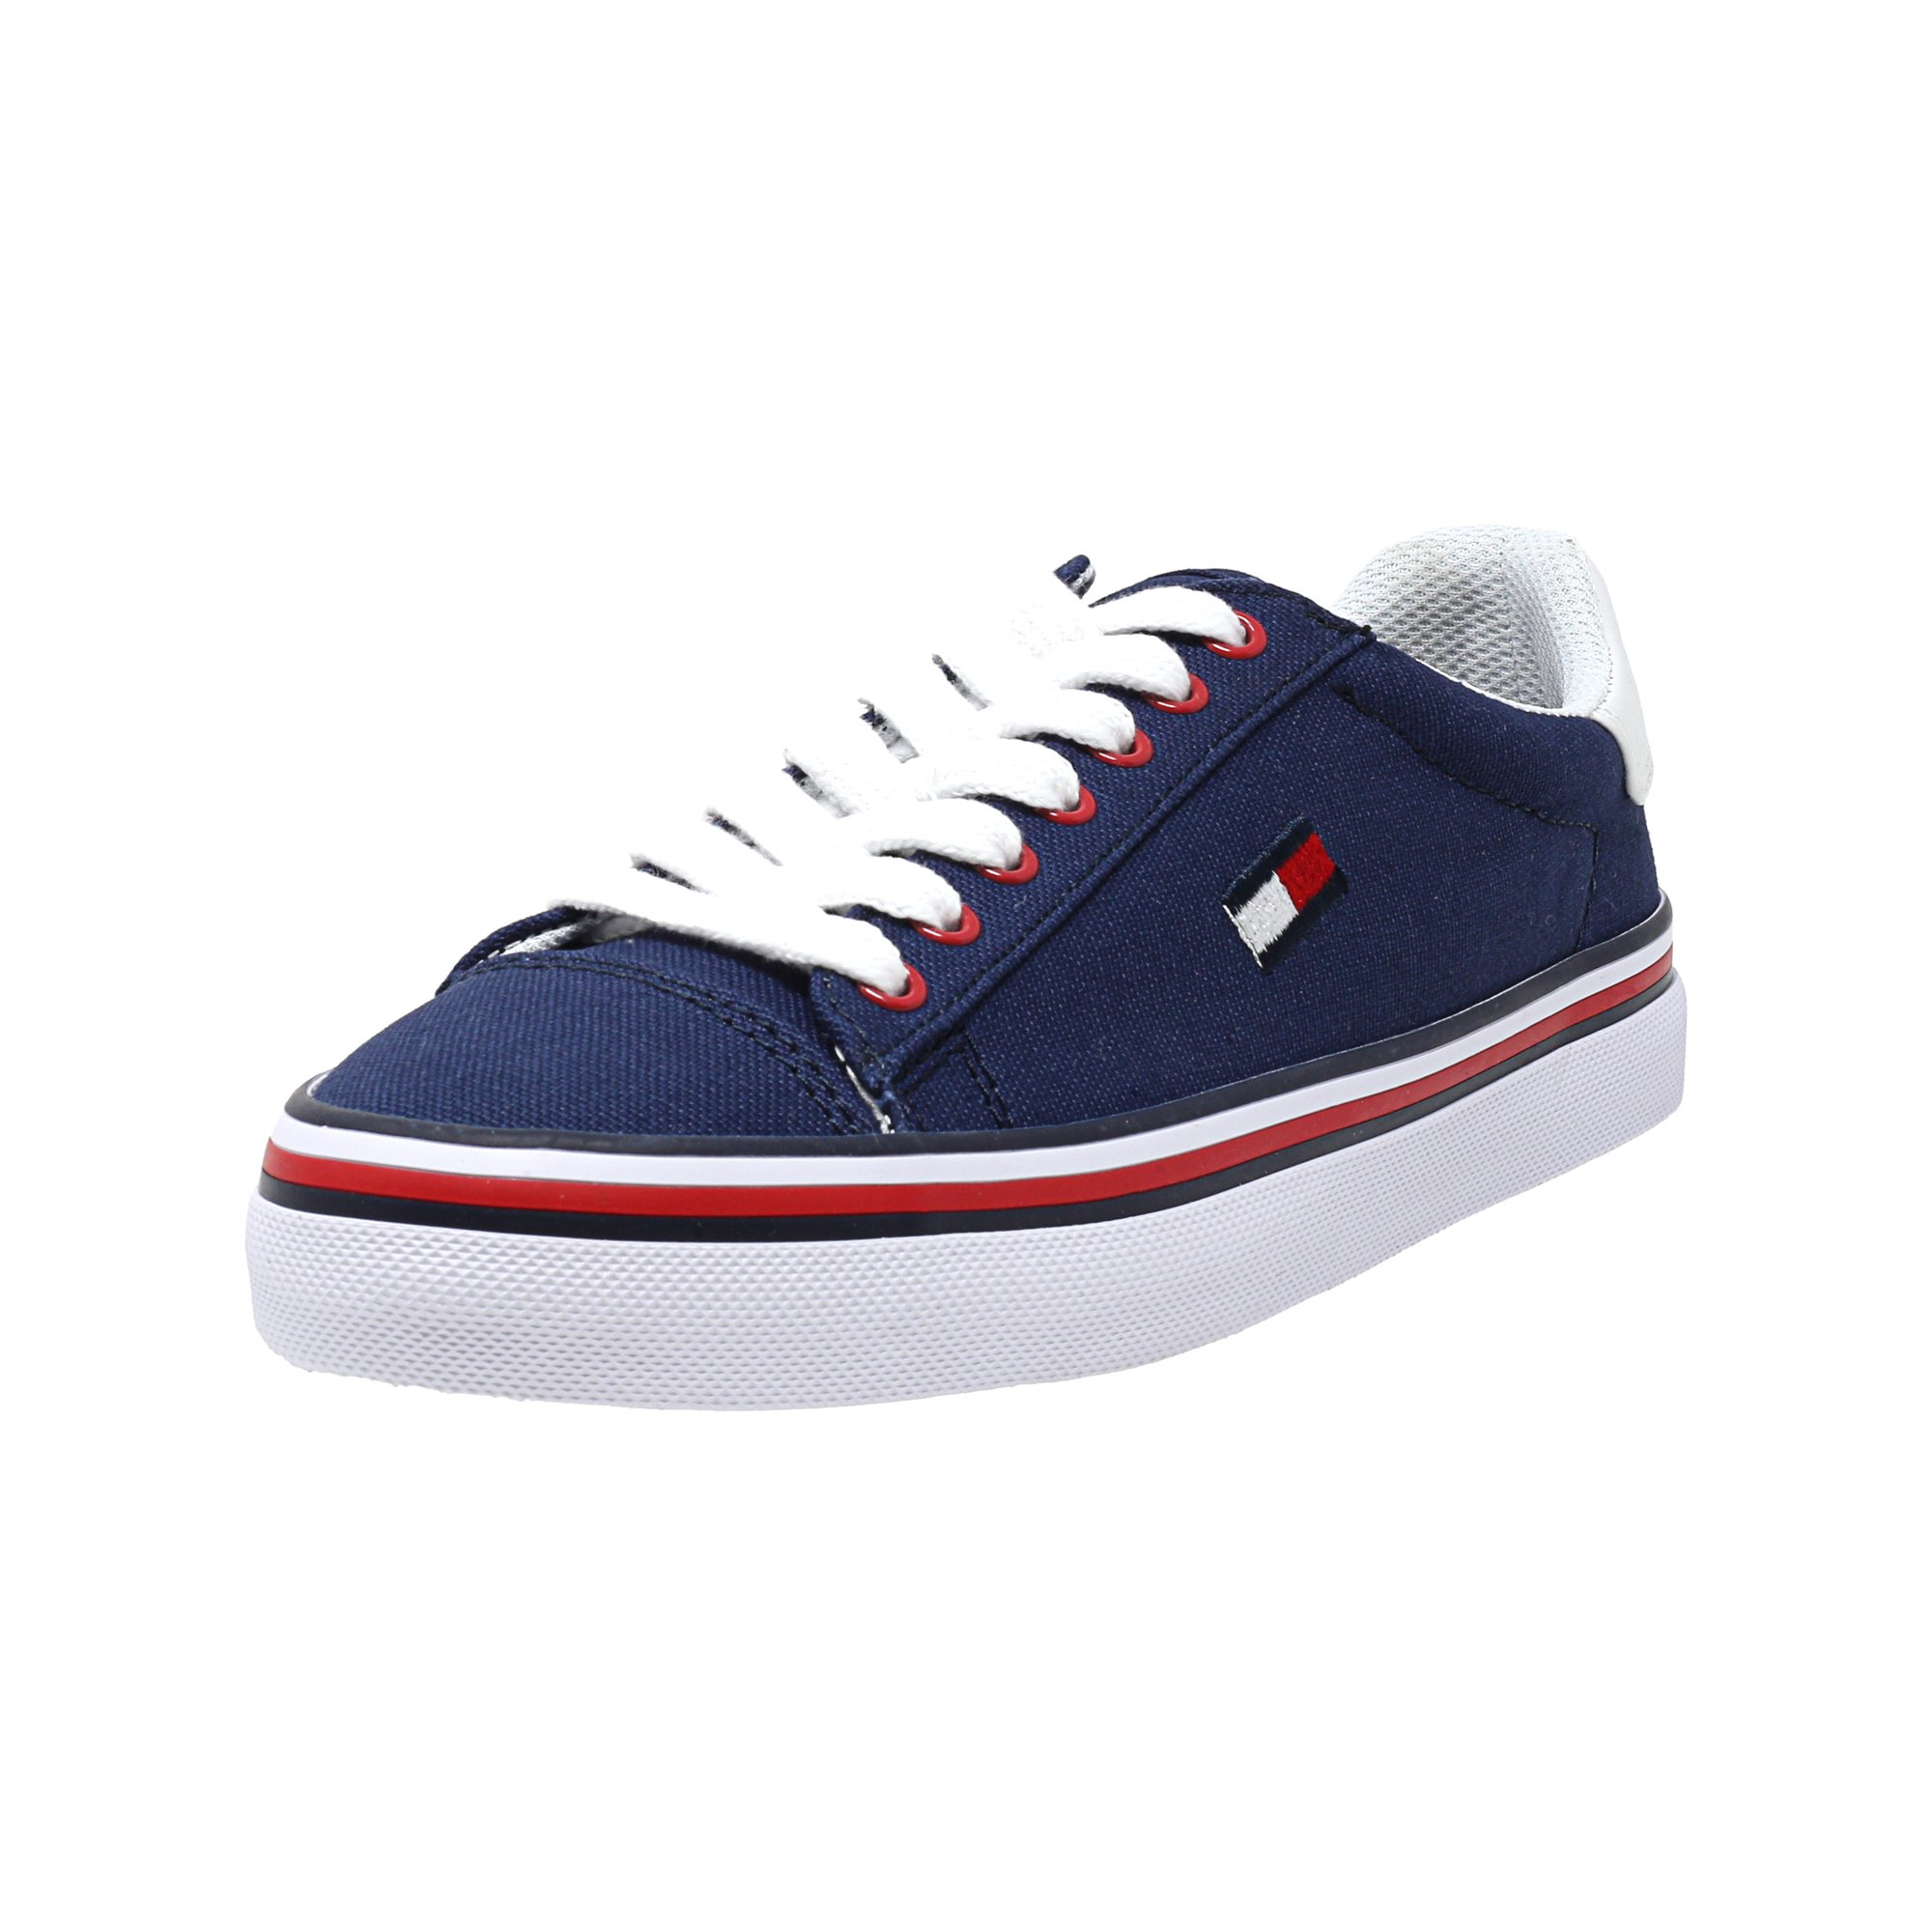 9a0d0e69 Tommy Hilfiger Women's Fressian Fabric Medium Blue Ankle-High Fashion  Sneaker - 9M